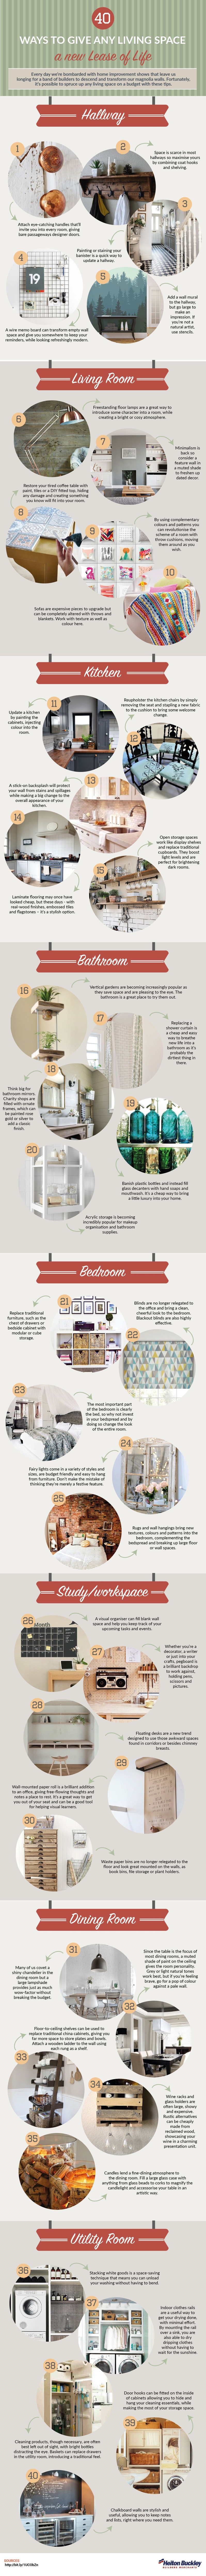 40 Ways to Give Any Living Space a New Lease of Life #Infographic